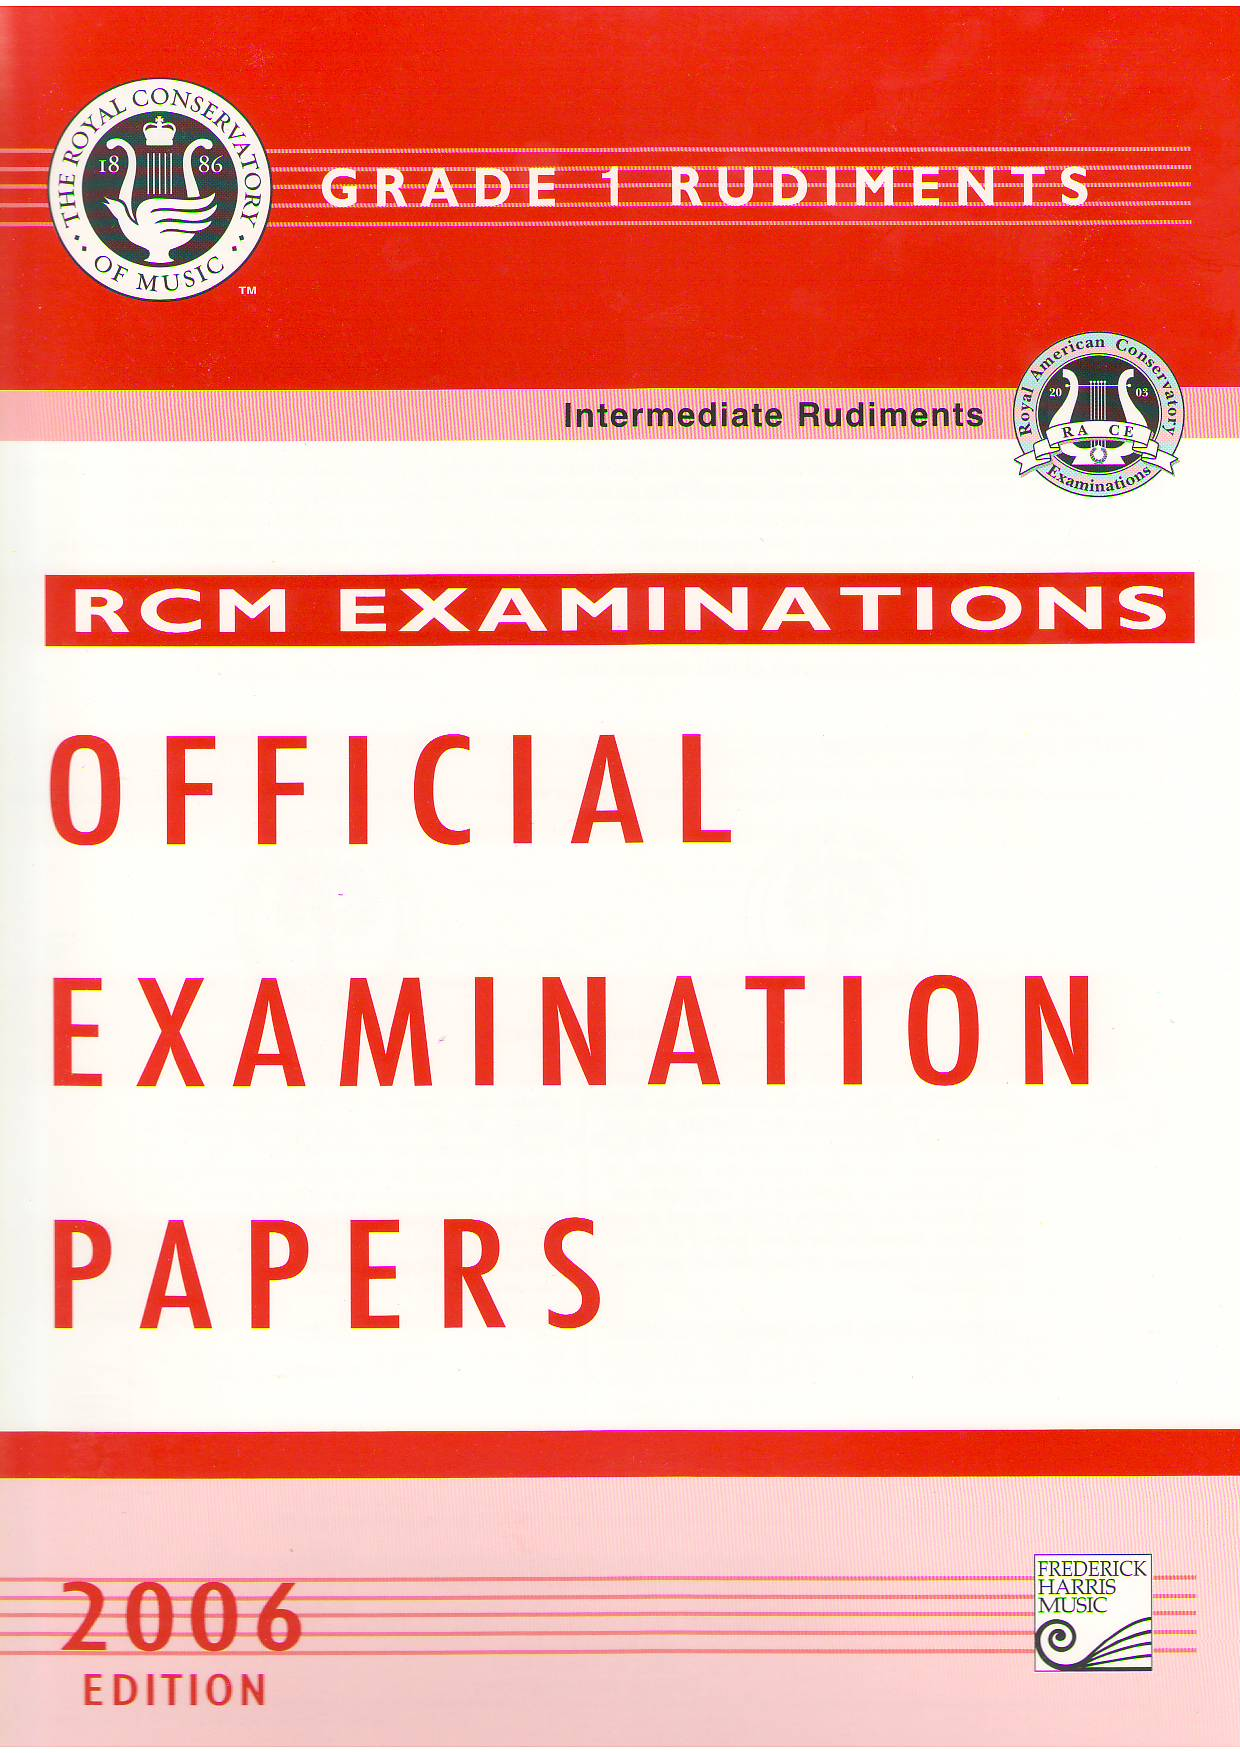 intermediate rudiments official examination papers Official examination papers 2015 edition - intermediate rudiments will combine all the items you order from us into one package and charge you only $399 for shipping.